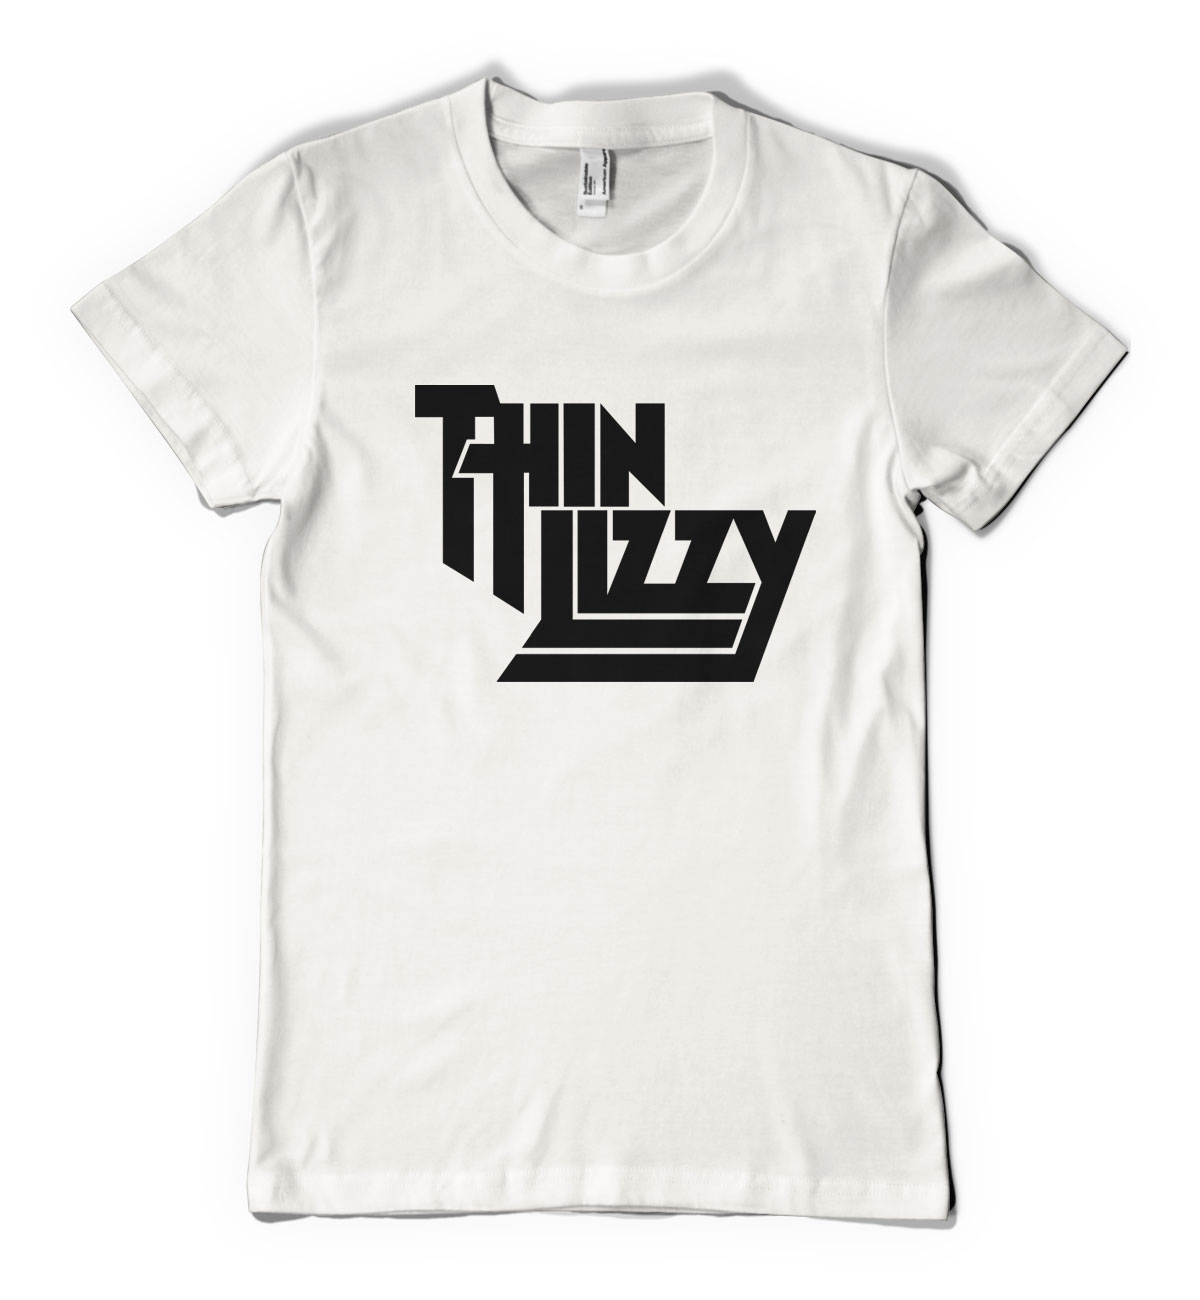 Thin lizzy t shirts vintage t shirts online blog for Vintage t shirt company